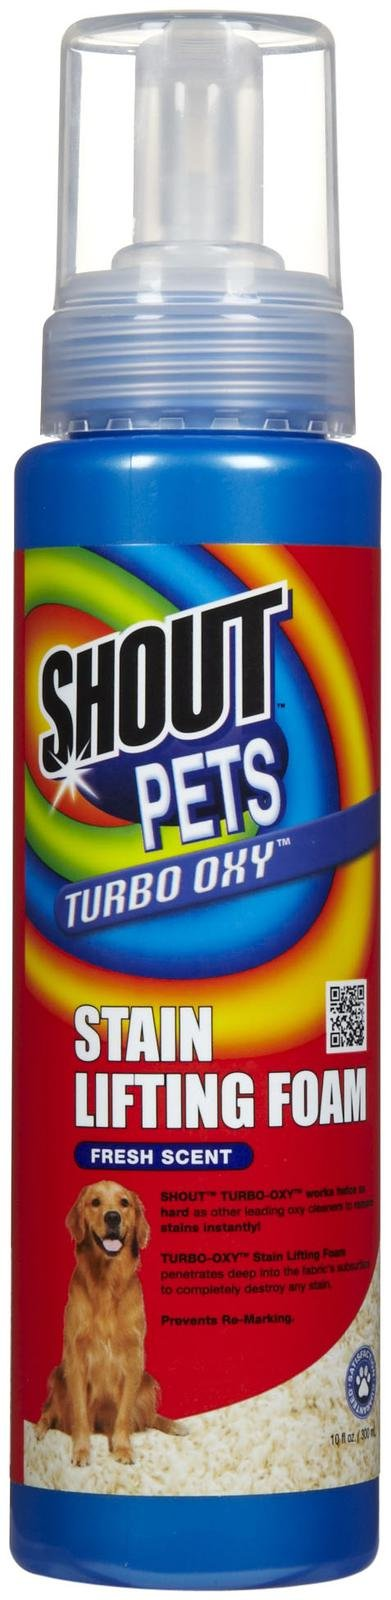 Shout Pets Turbo Oxy - Stain Lifting Foam - Fresh Scent